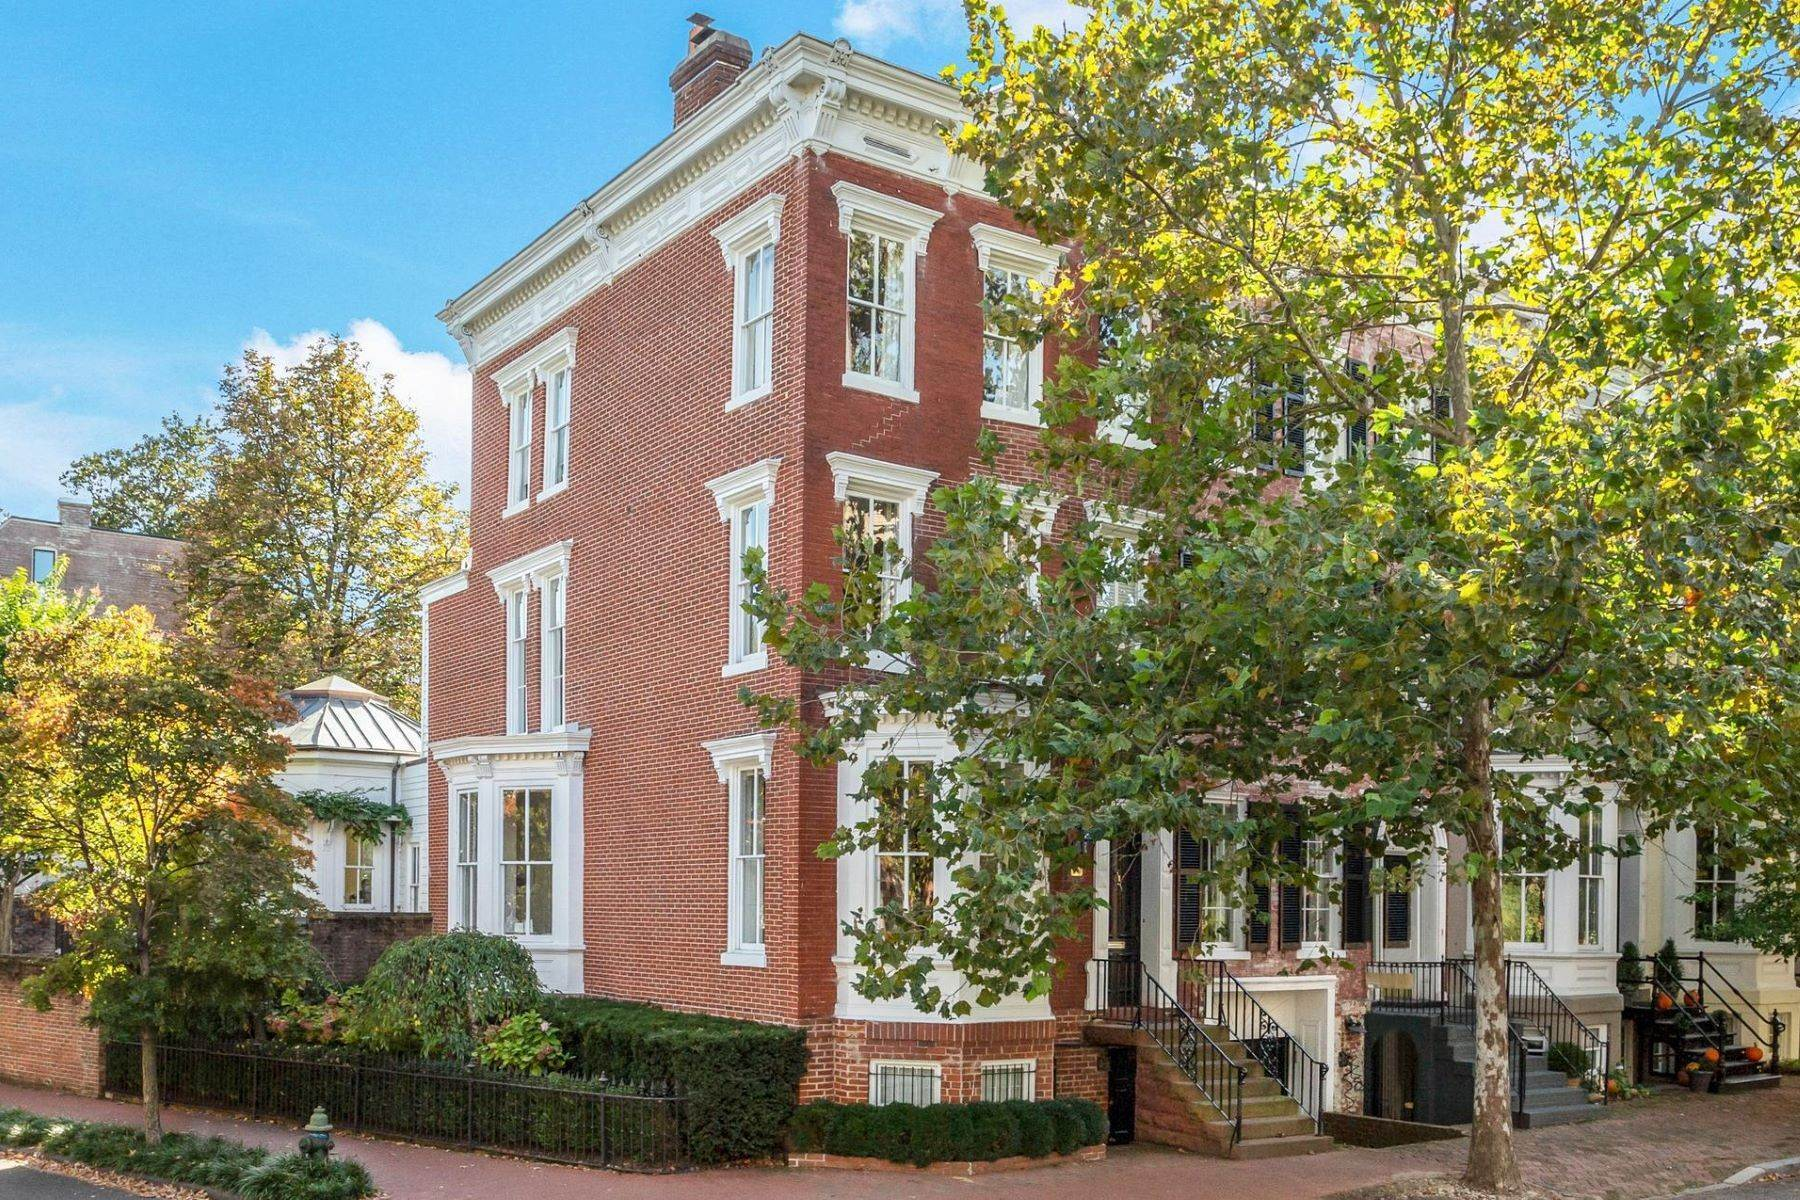 Property for Sale at Georgetown, Washington, District Of Columbia, 20007 United States